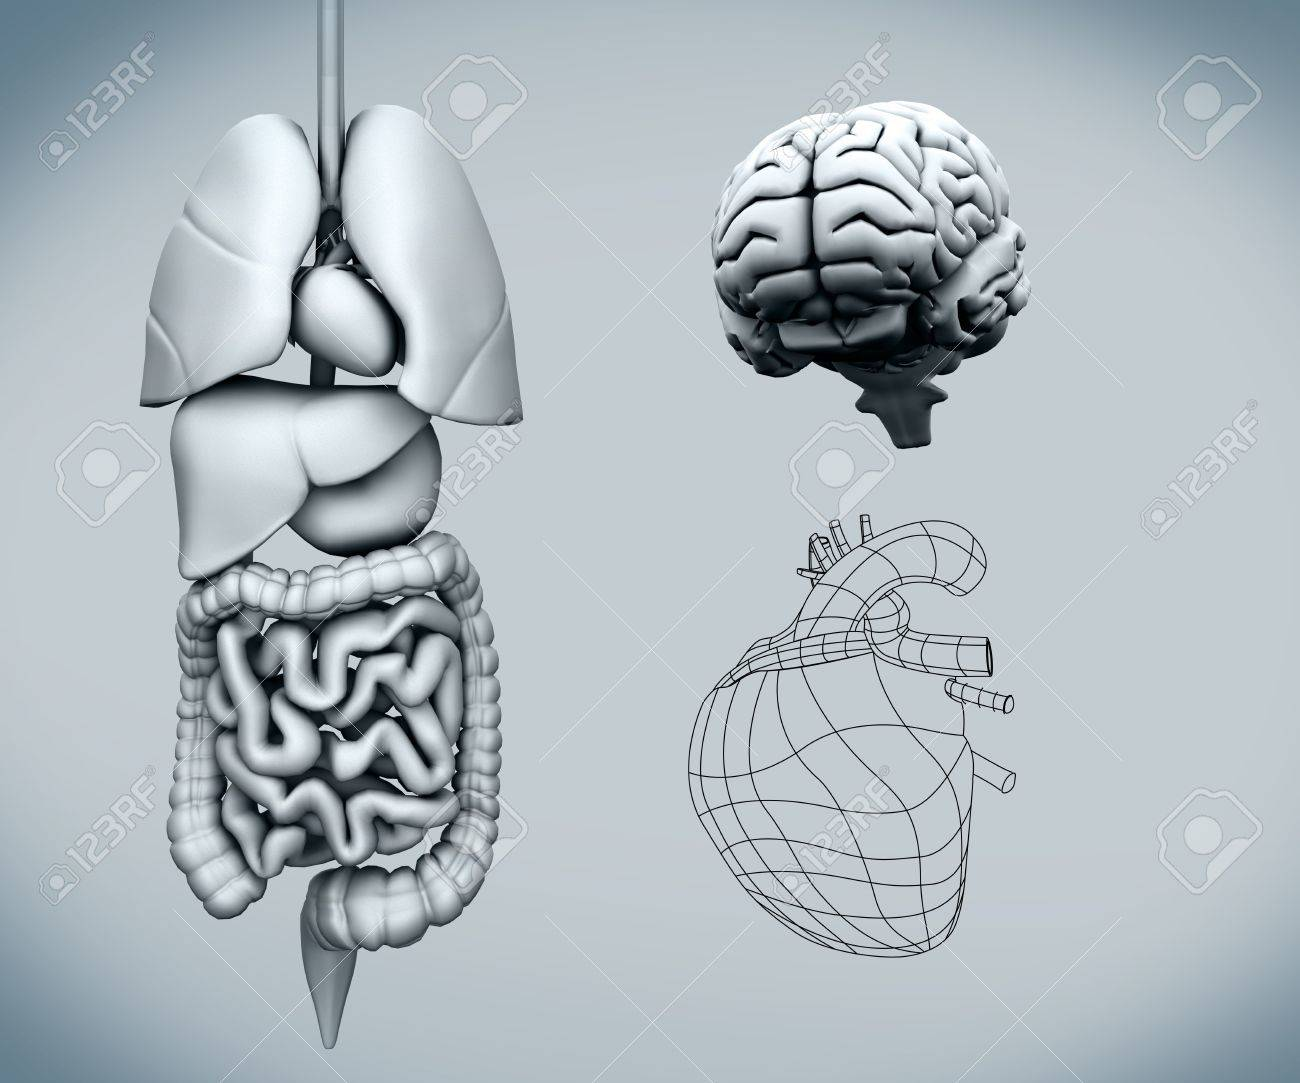 Assembled human organs with the brain against a grey background Stock Photo - 26702156